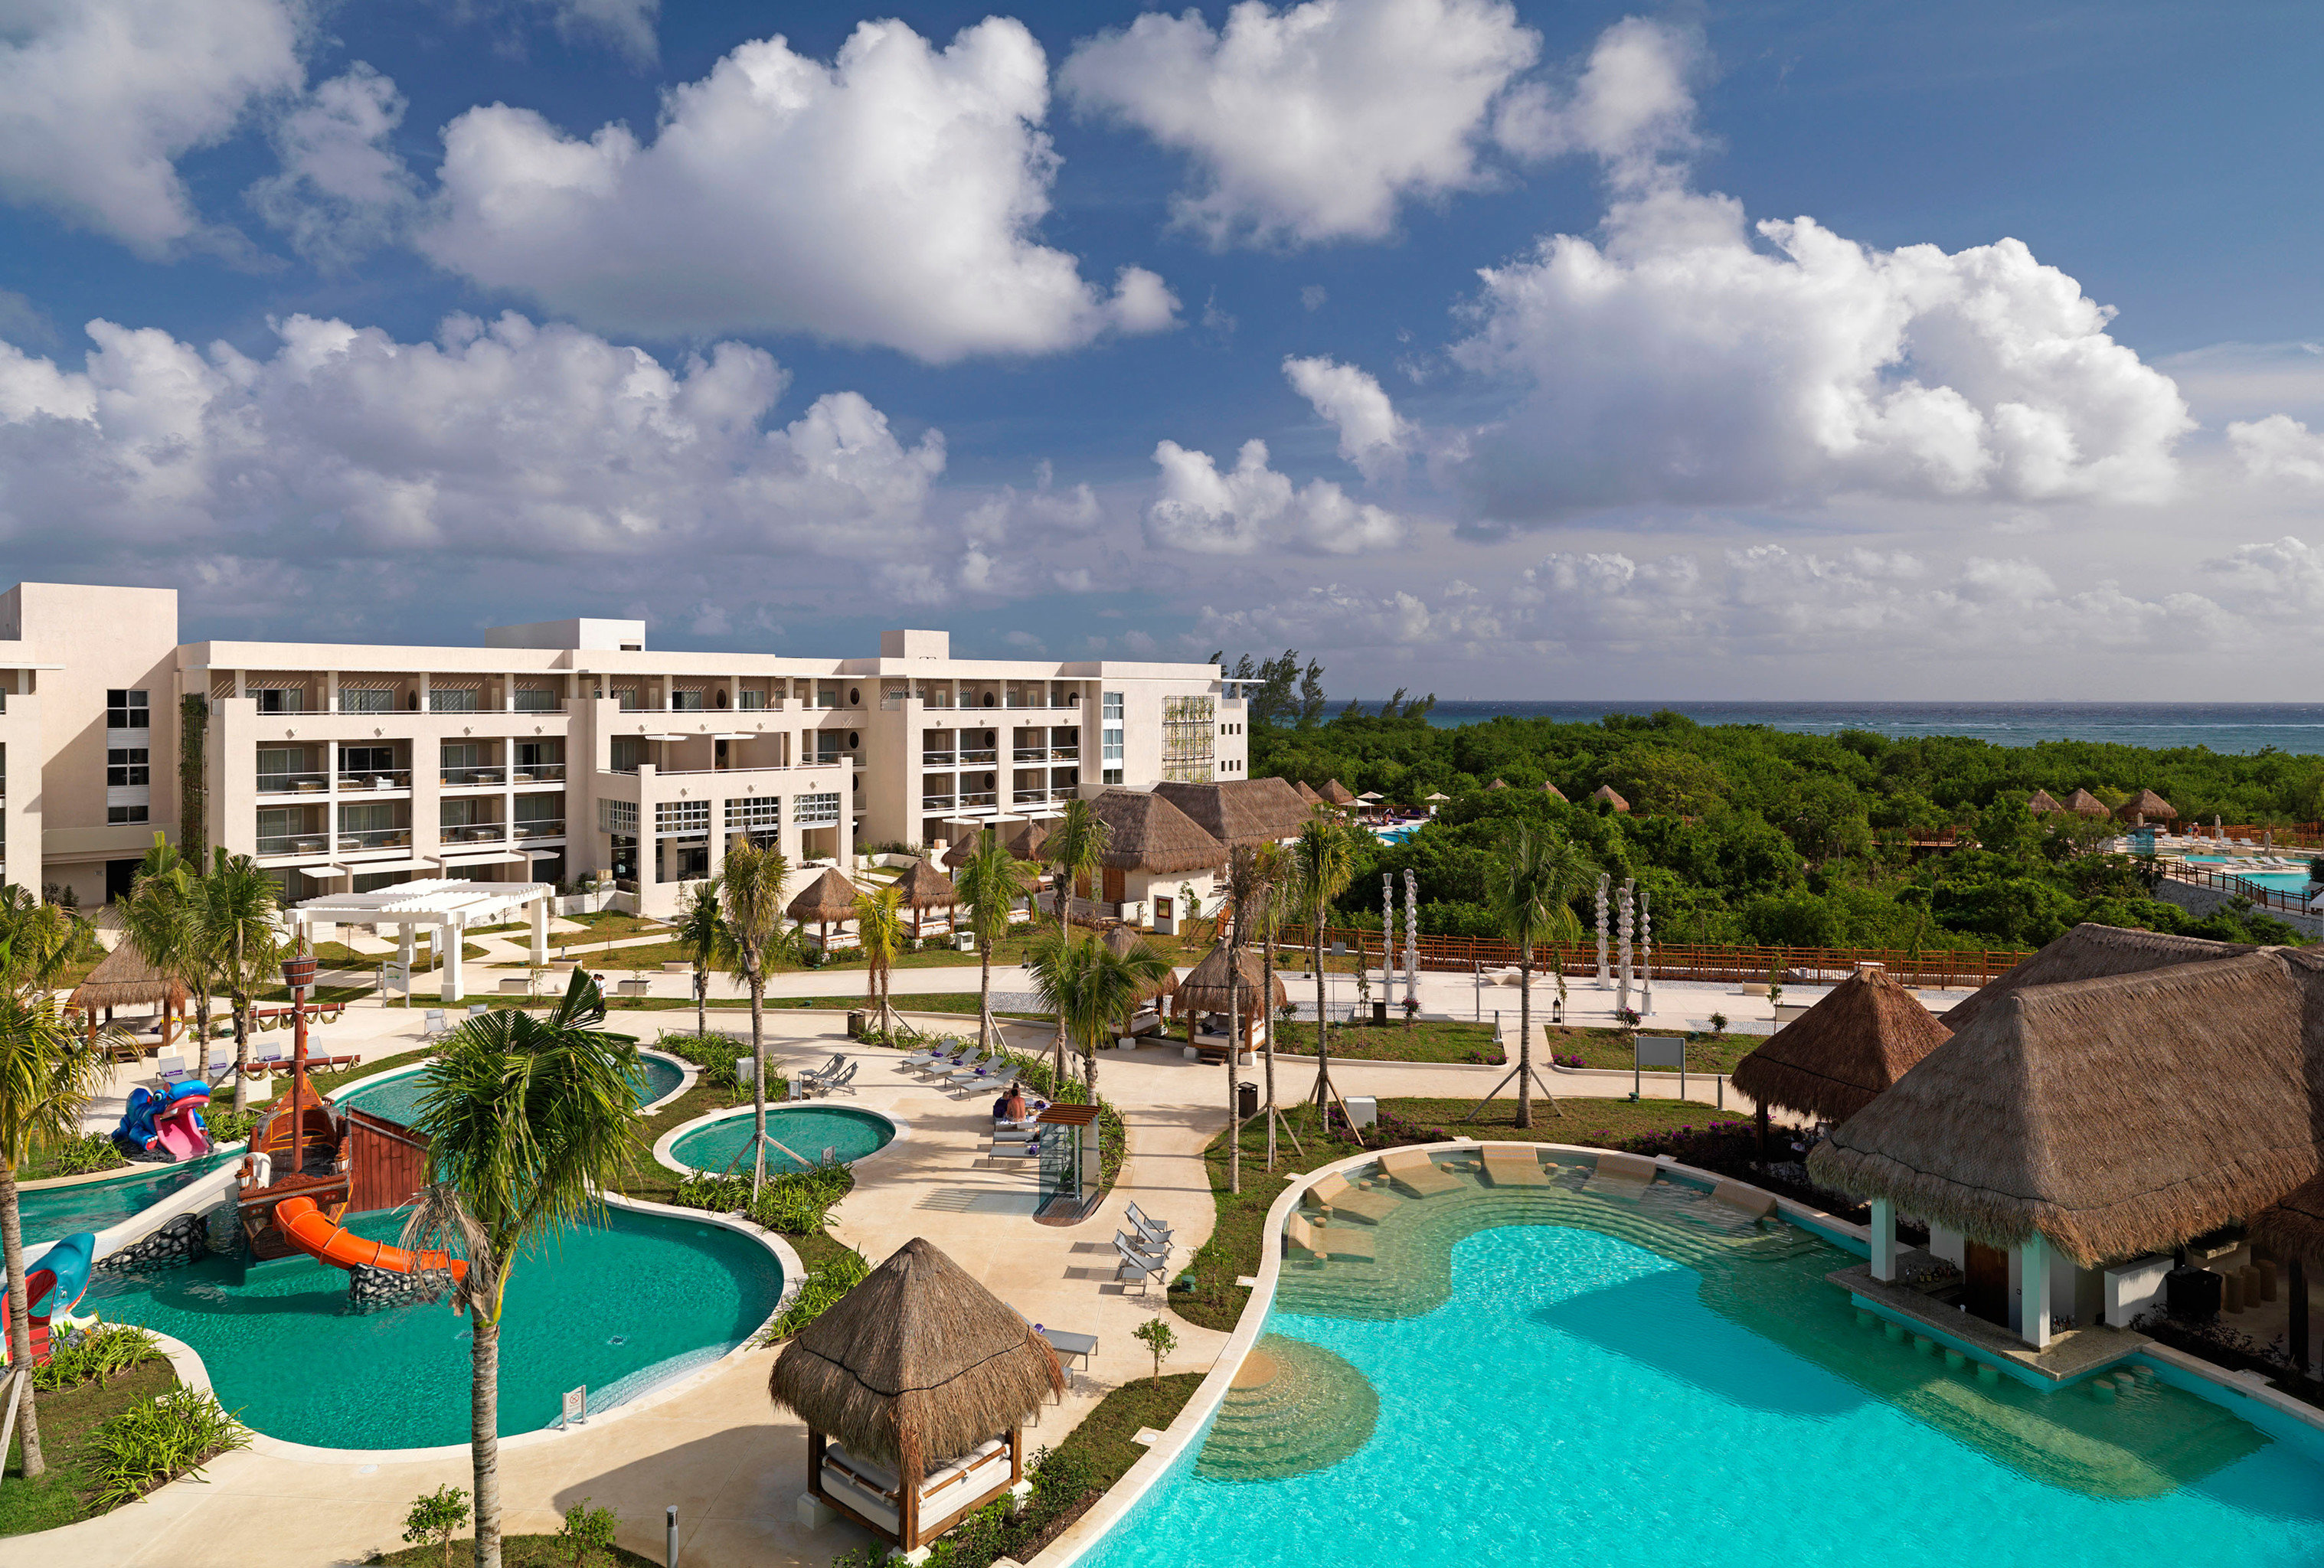 All-Inclusive Resorts Family Family Travel Hotels Pool sky outdoor leisure property Resort vacation estate swimming pool marina condominium real estate Sea bay blue day